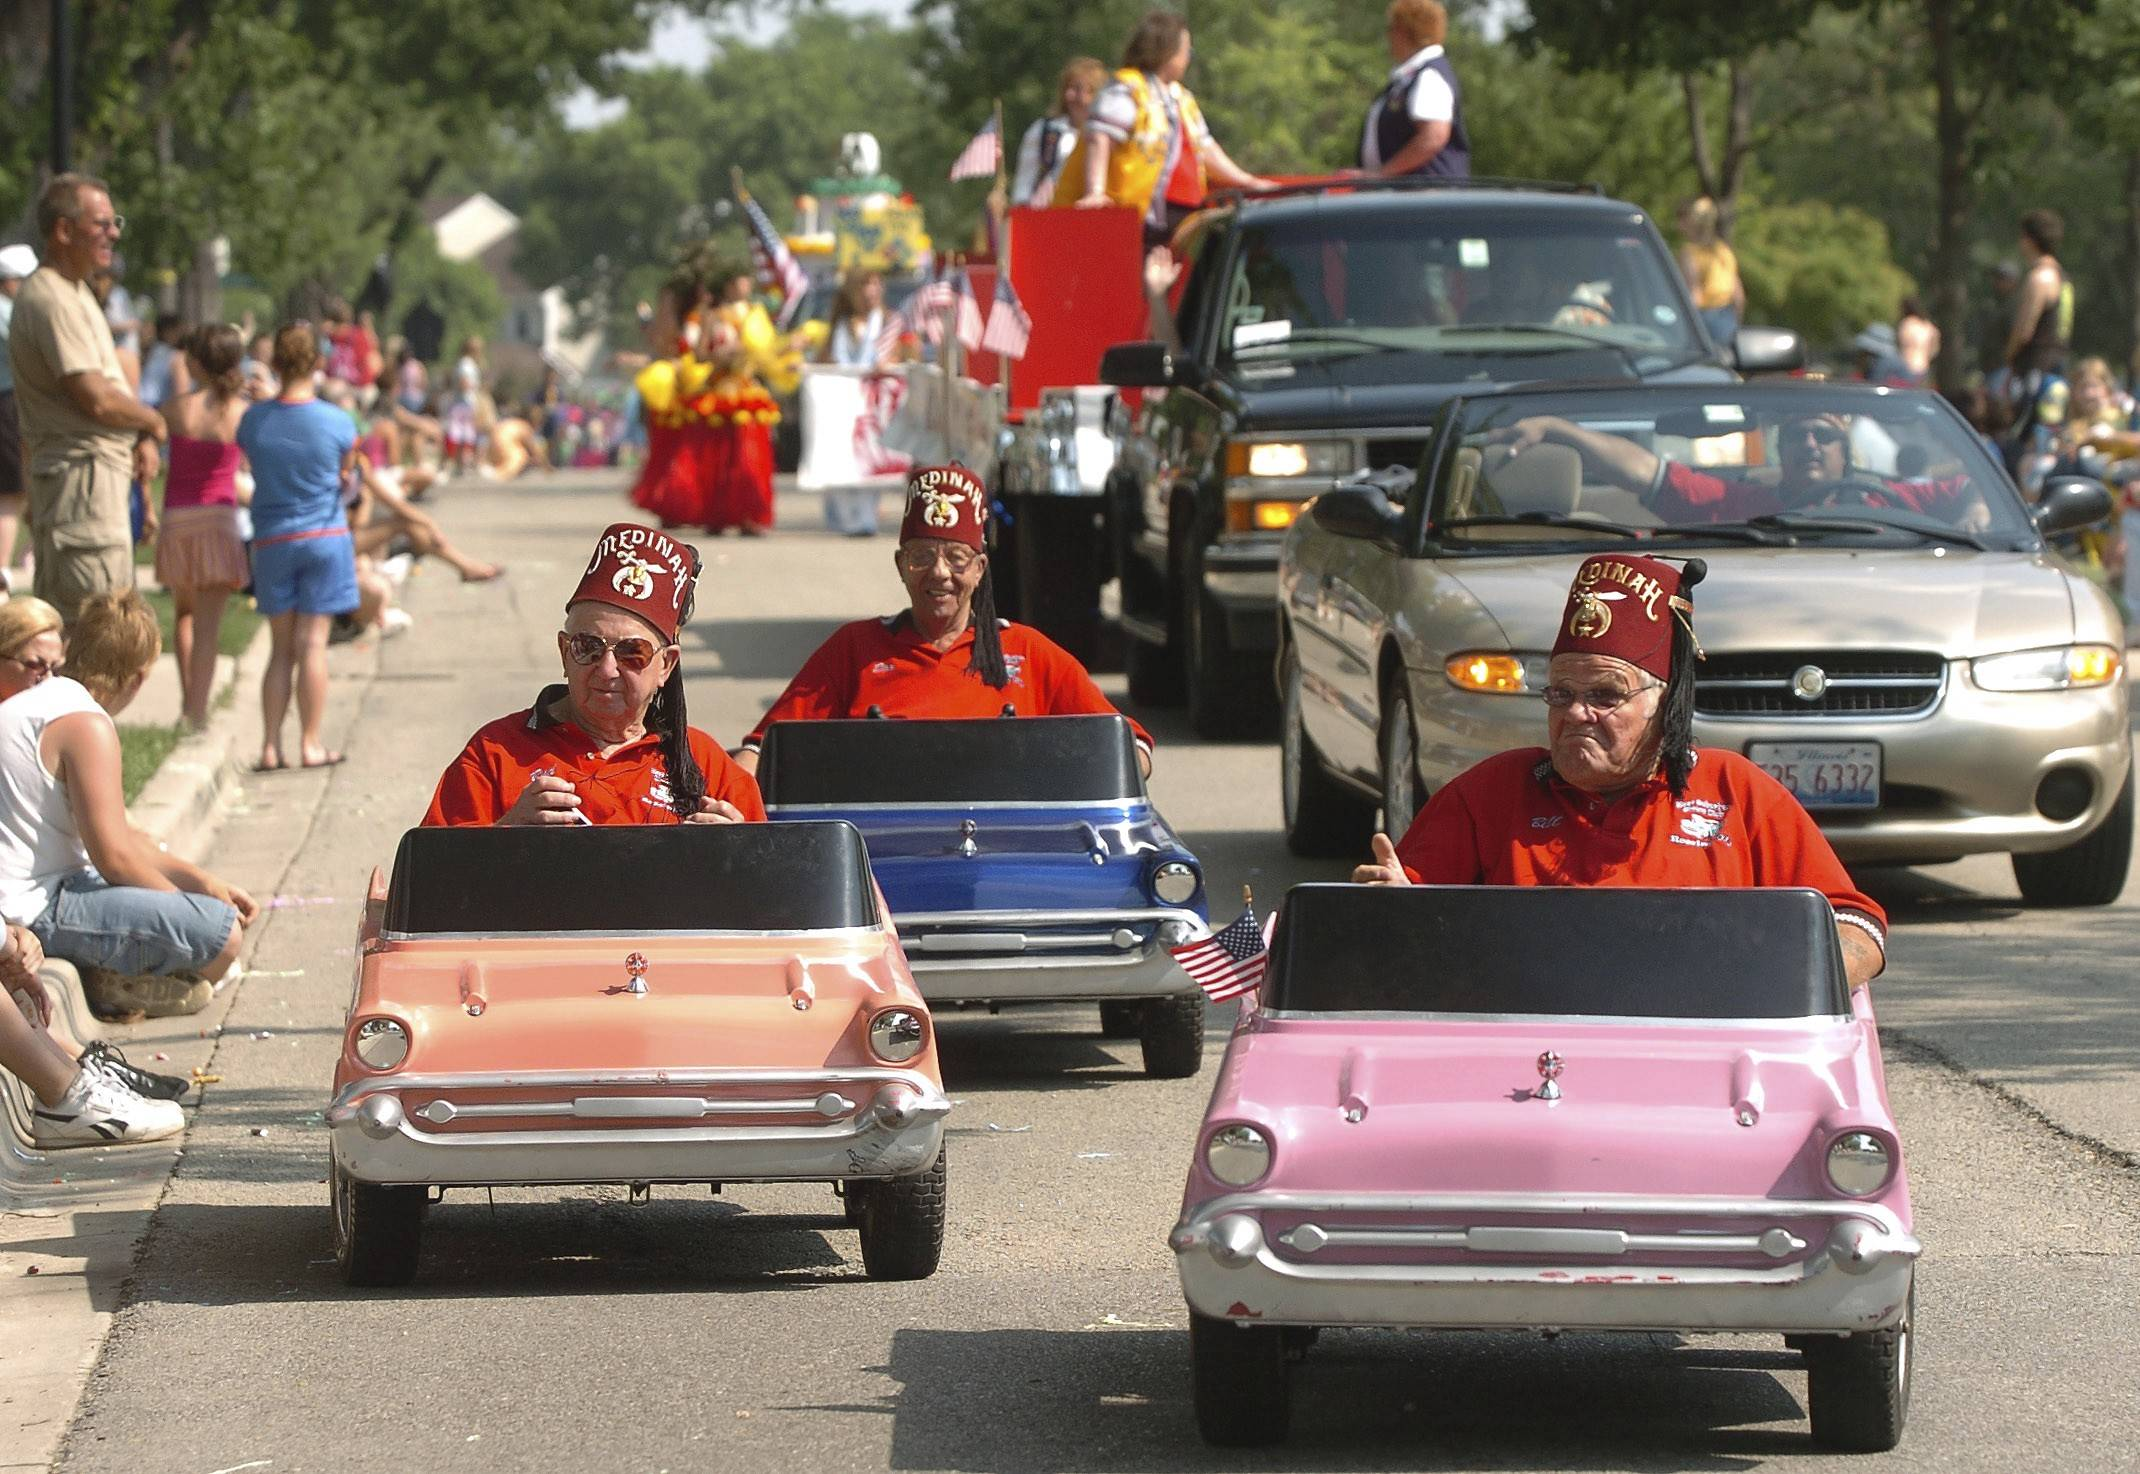 Mini cars amuse people at the 2006 edition of the Elk Grove Village Hometown Parade.